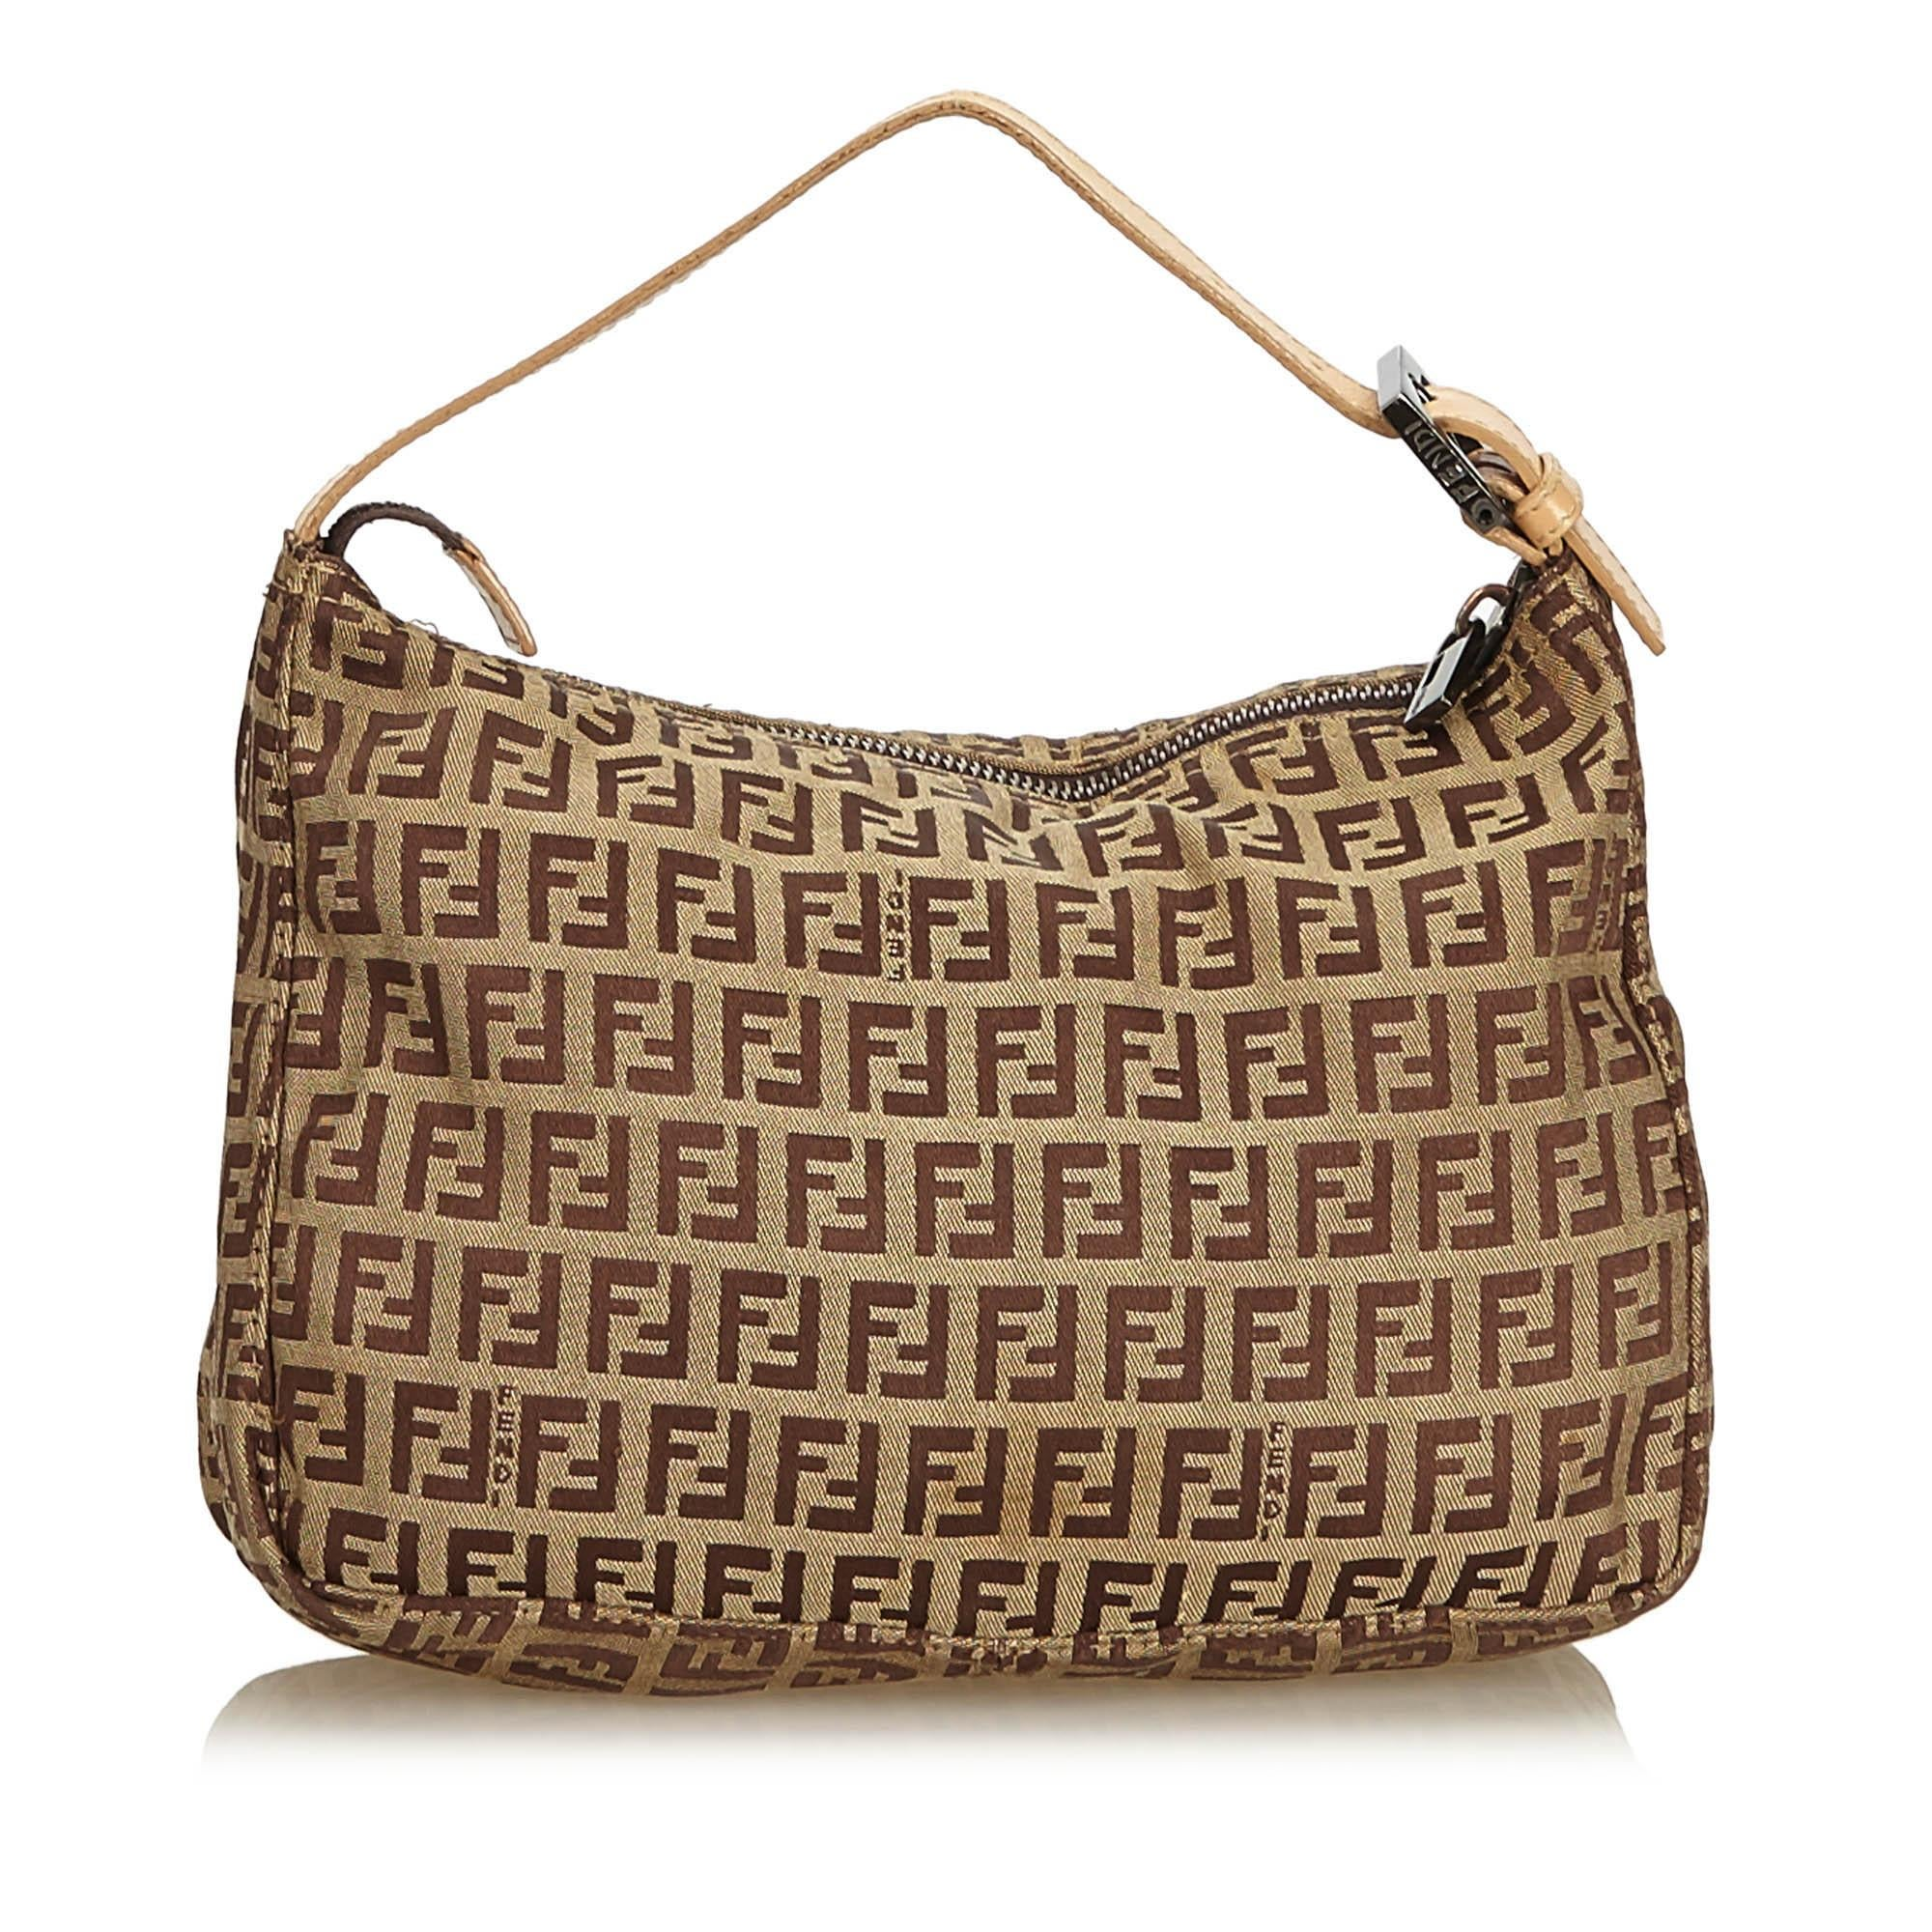 573cbcc01eb6 Fendi Brown x Beige Zucchino Canvas Handbag at 1stdibs